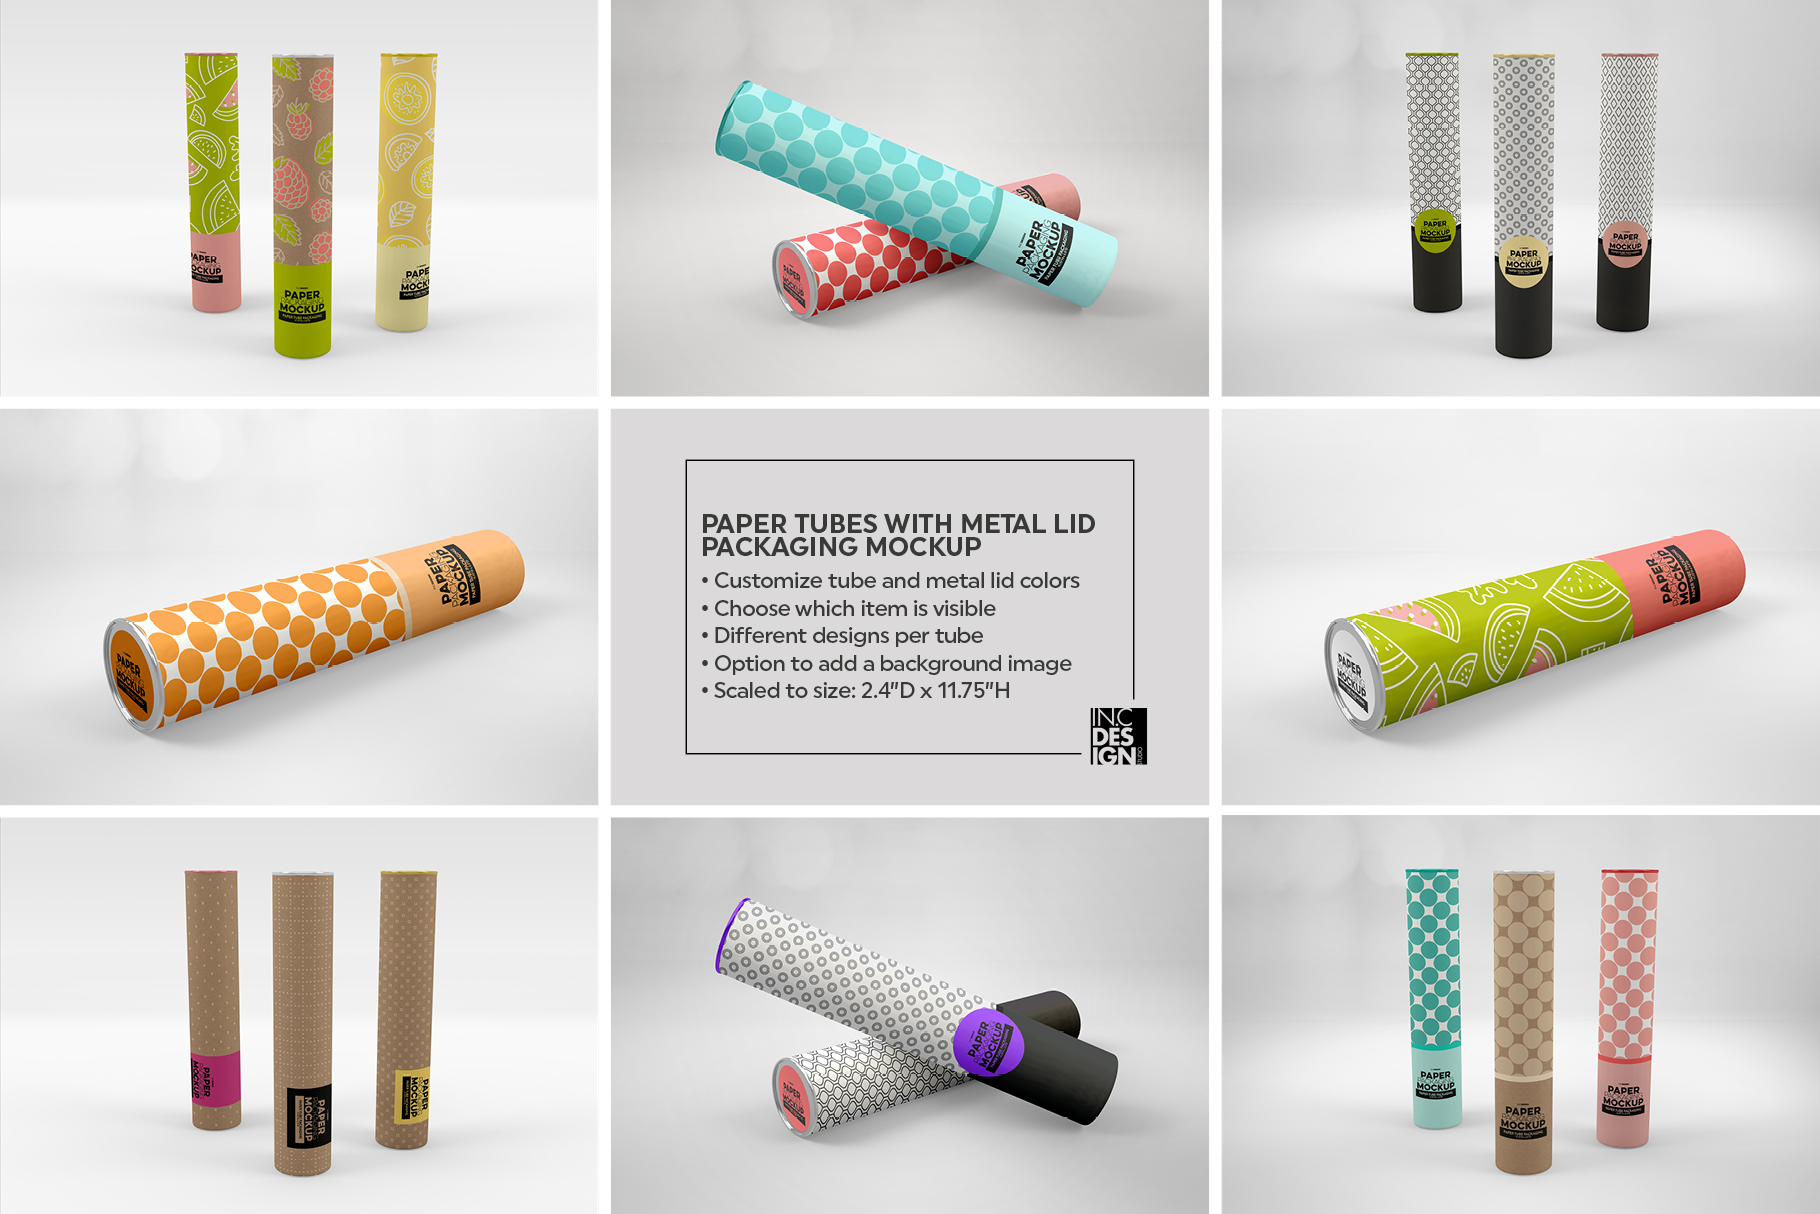 Paper Tube Packaging Mockup example image 4